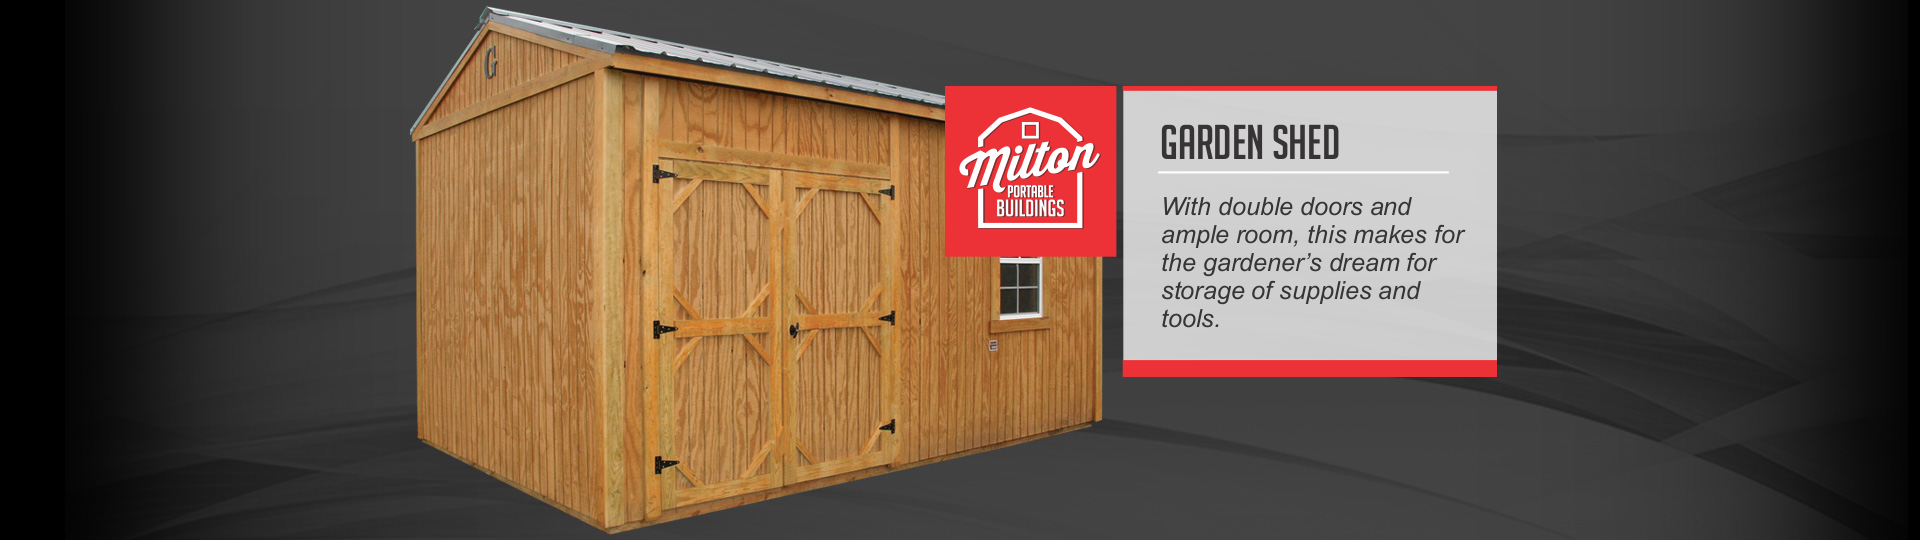 milton portable buildings sheds and carports the best deals on portable buildings sheds and carports in milton florida - Garden Sheds Florida